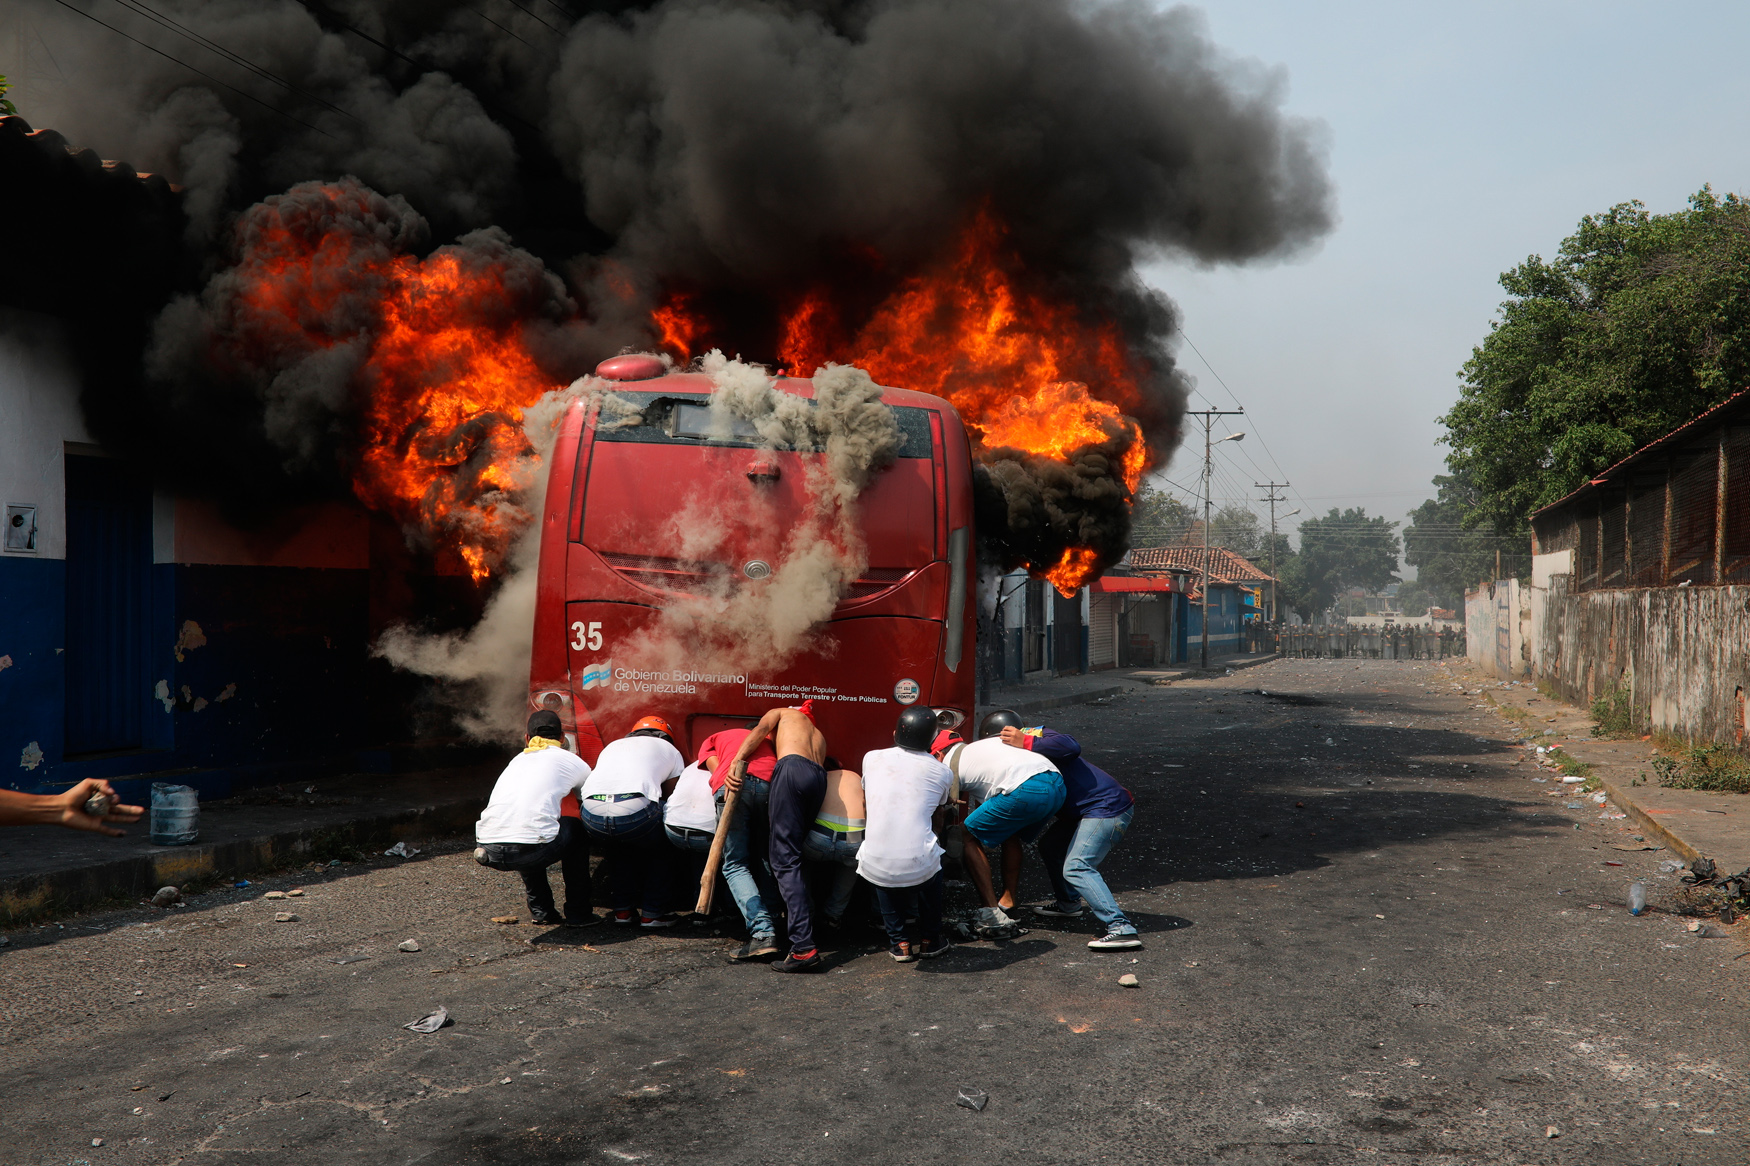 Demonstrators push a bus that was torched during clashes with the Venezuelan Bolivarian National Guard in Urena, Venezuela, near the border with Colombia, Saturday, Feb. 23, 2019. (AP Photo/Rodrigo Abd)